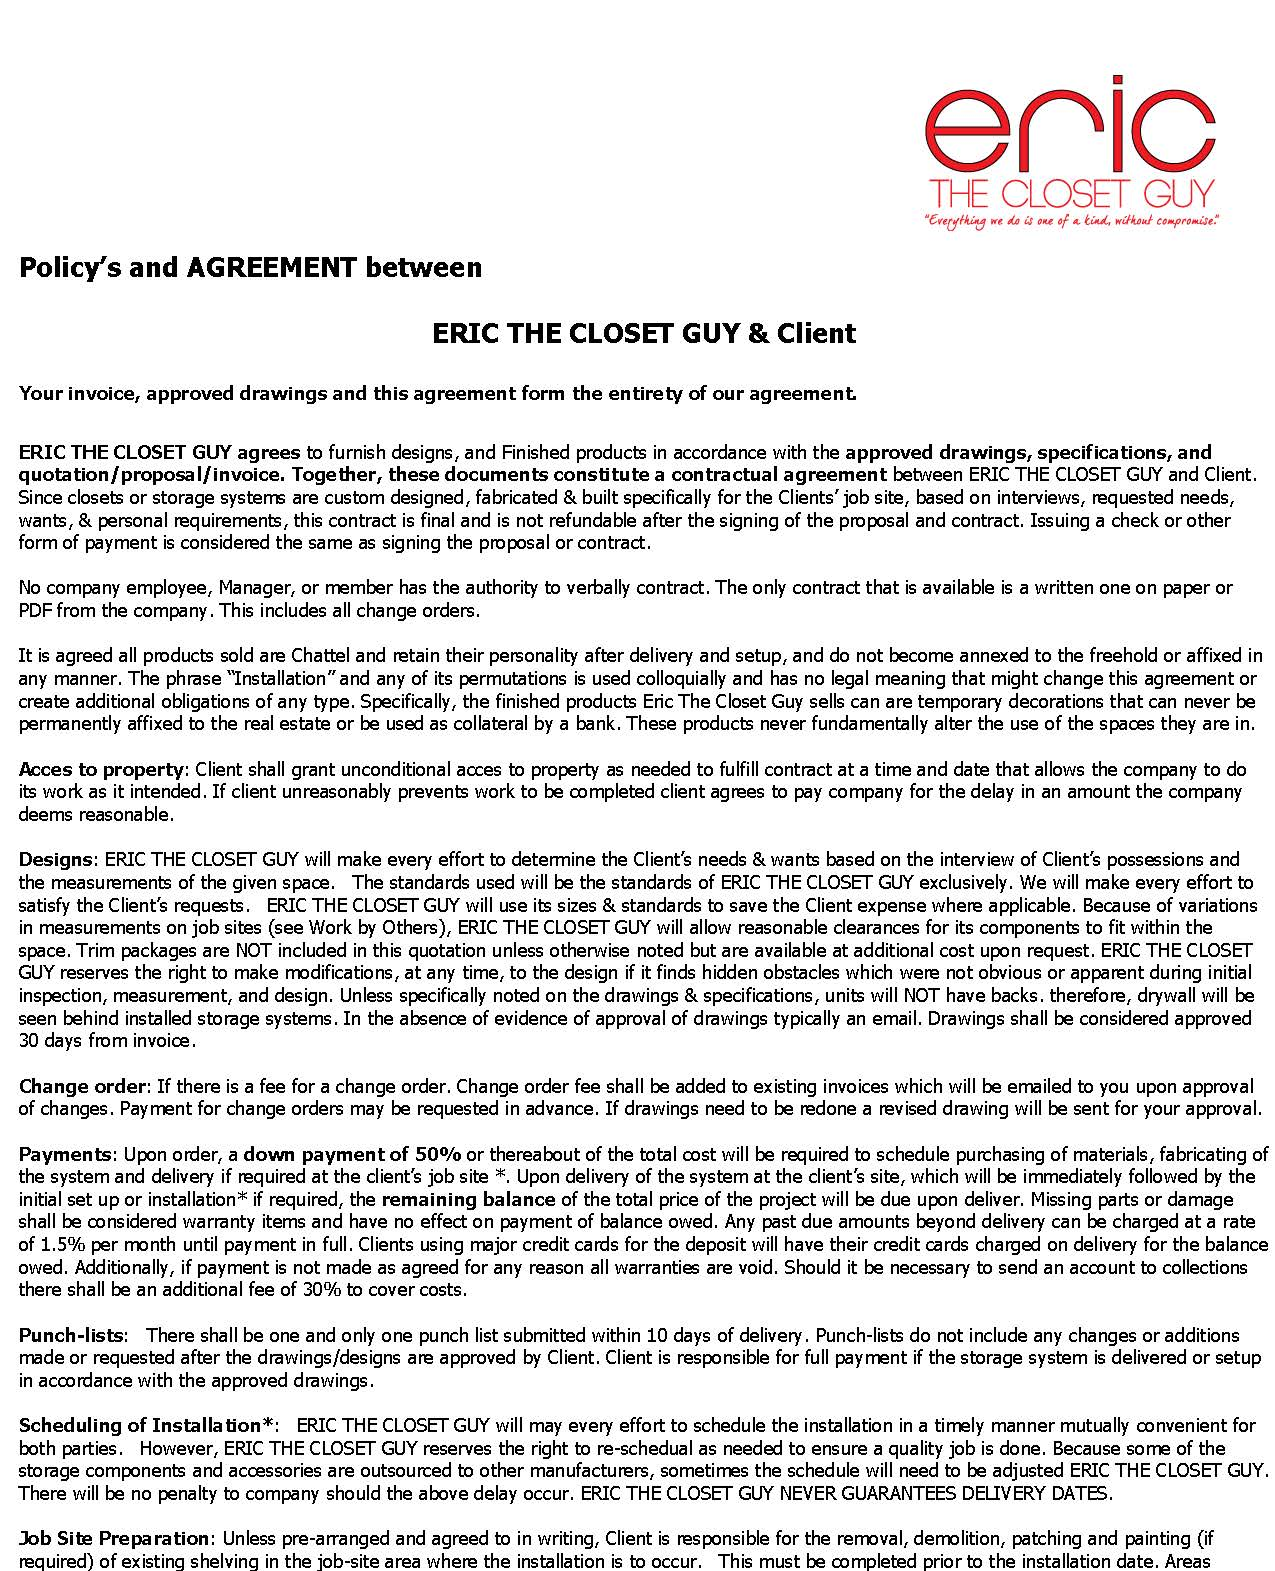 Policy's and AGREEMENT Page1